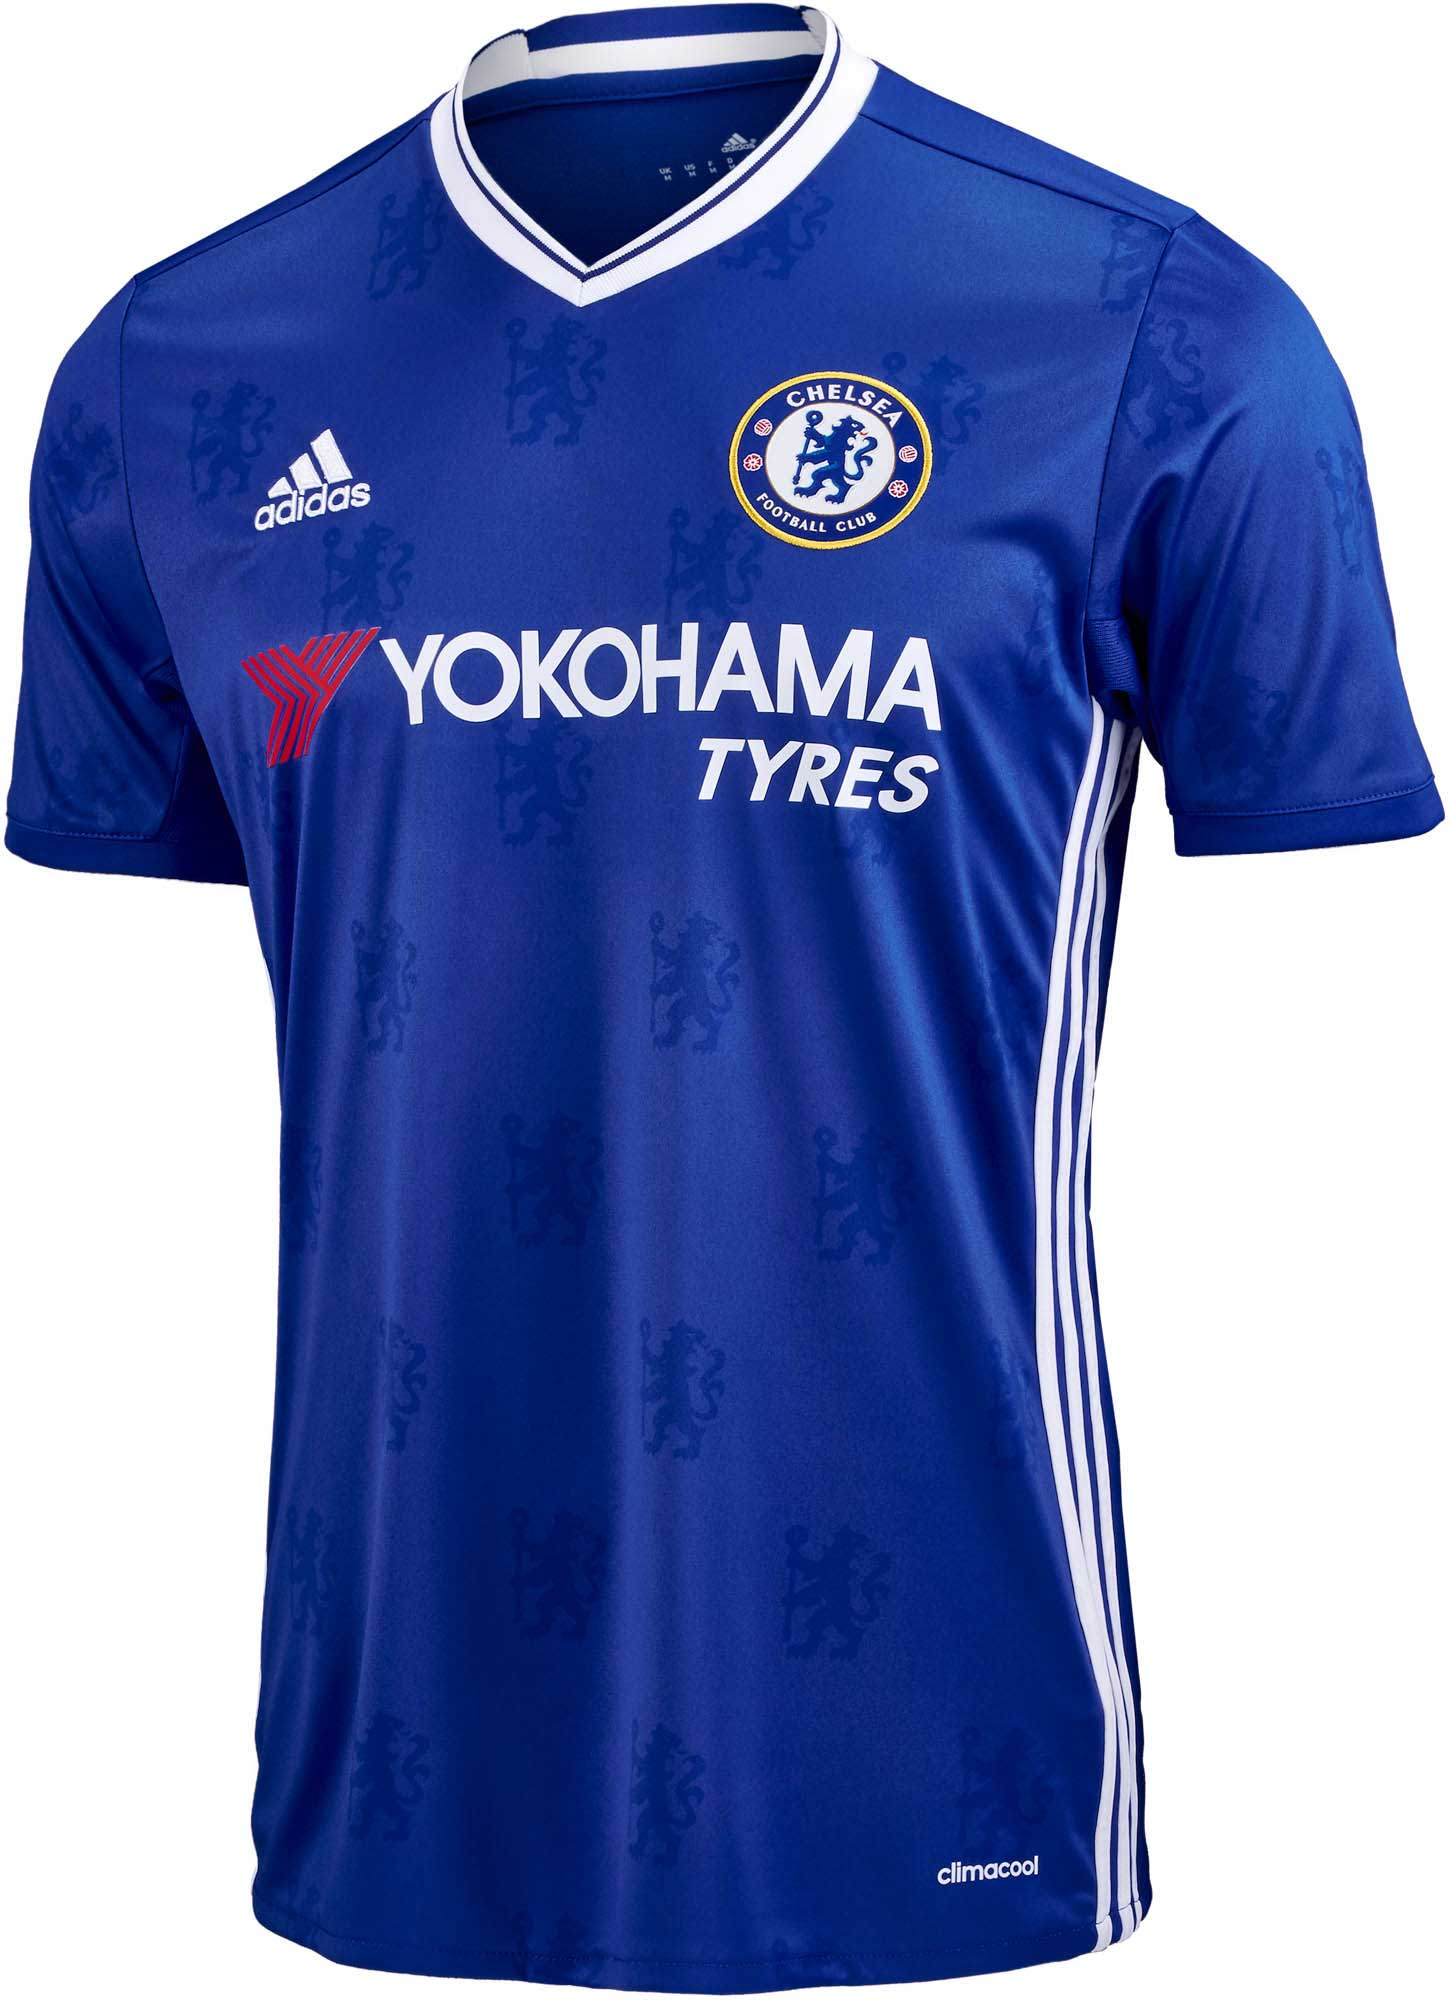 new product 0f403 f9245 adidas Chelsea Home Jersey 2016-17